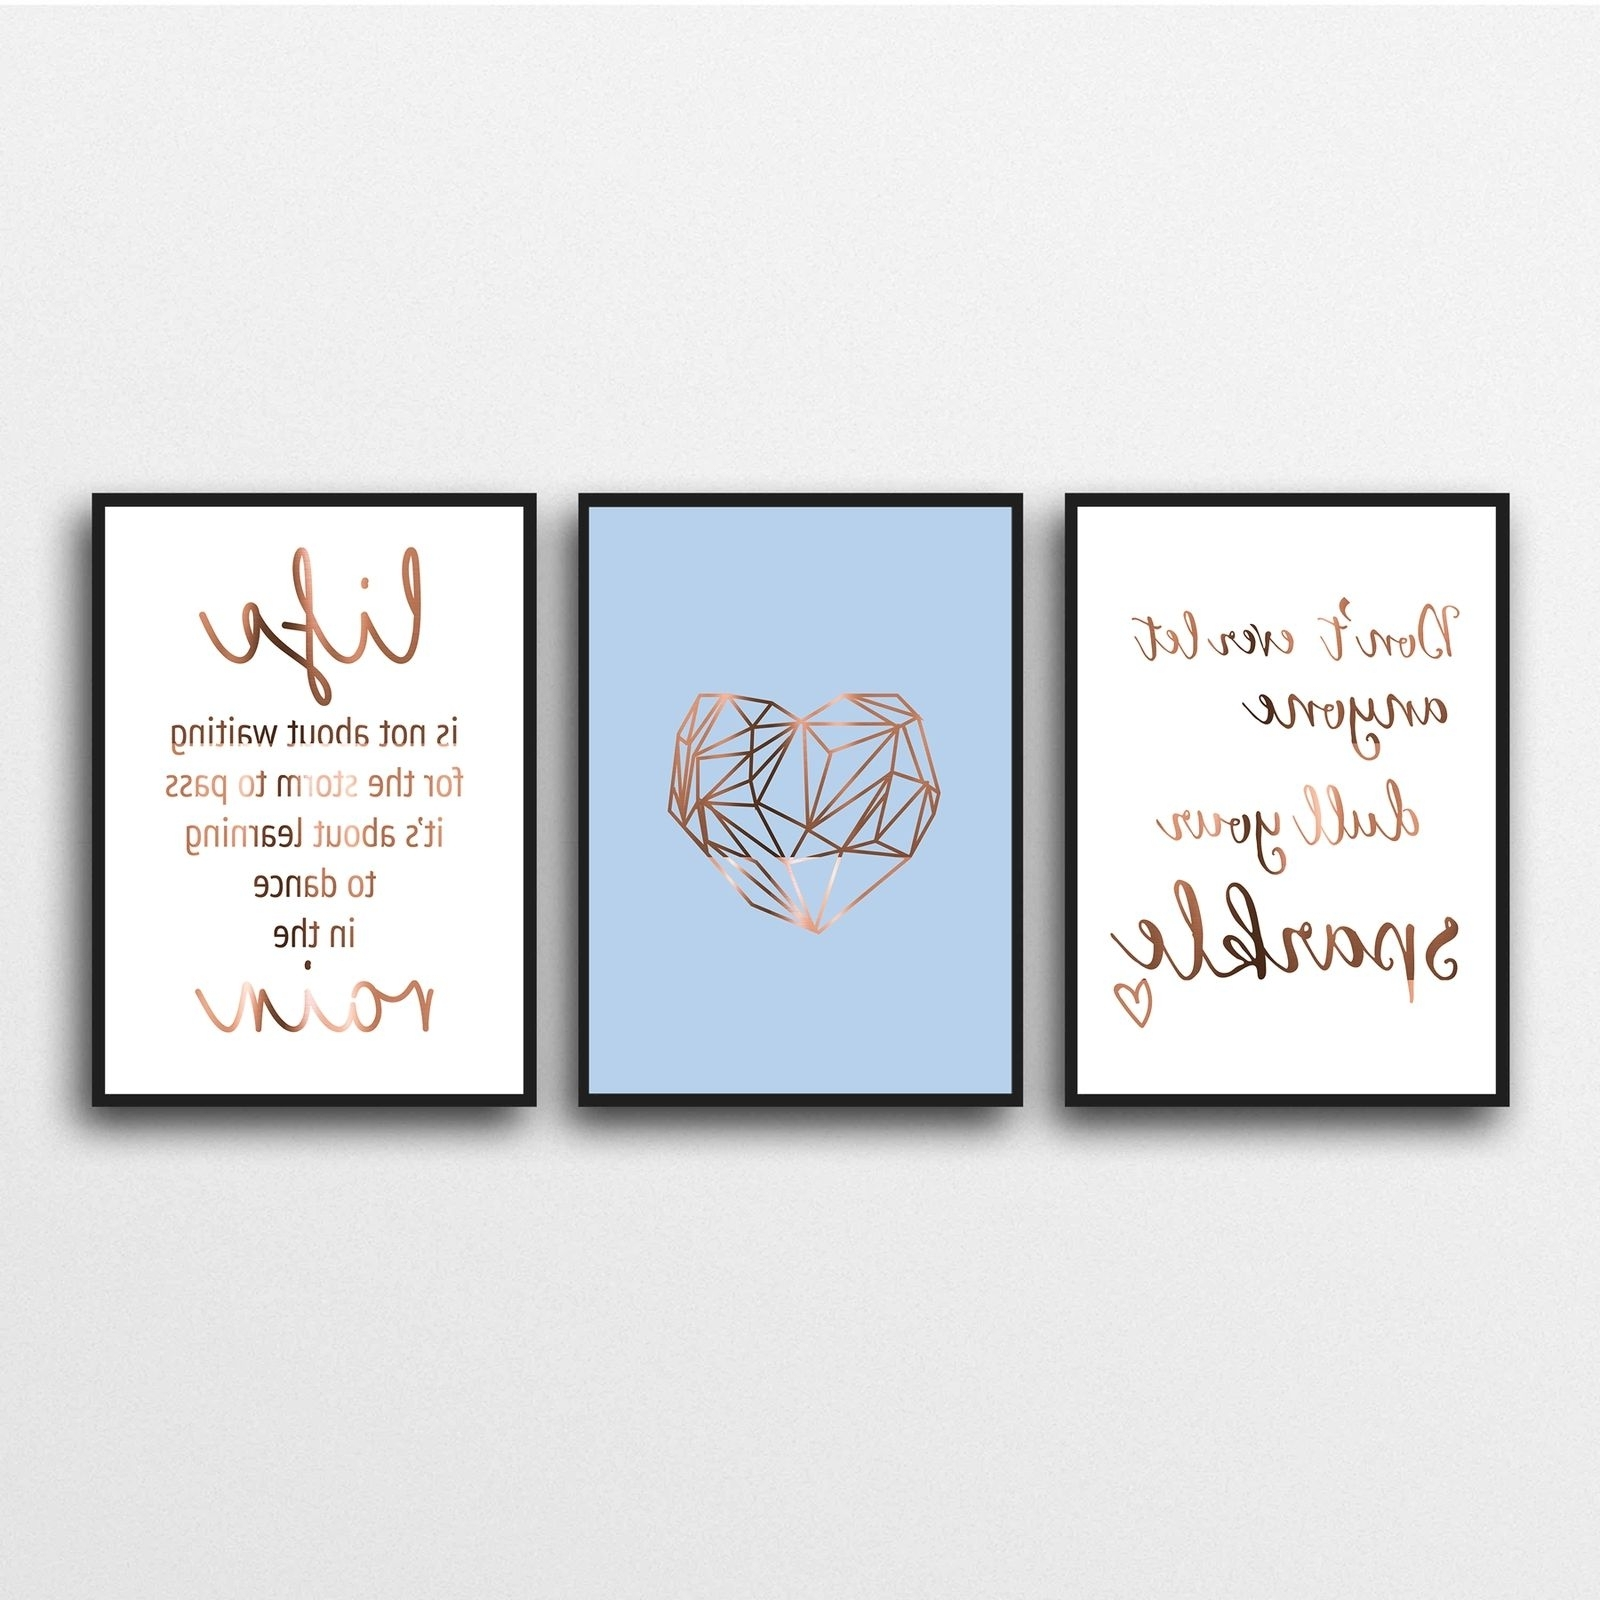 Dance Quotes Canvas Wall Art In Most Recent Inspirational Copper Foil Quote Posters, Set Of 3 Prints (View 5 of 15)